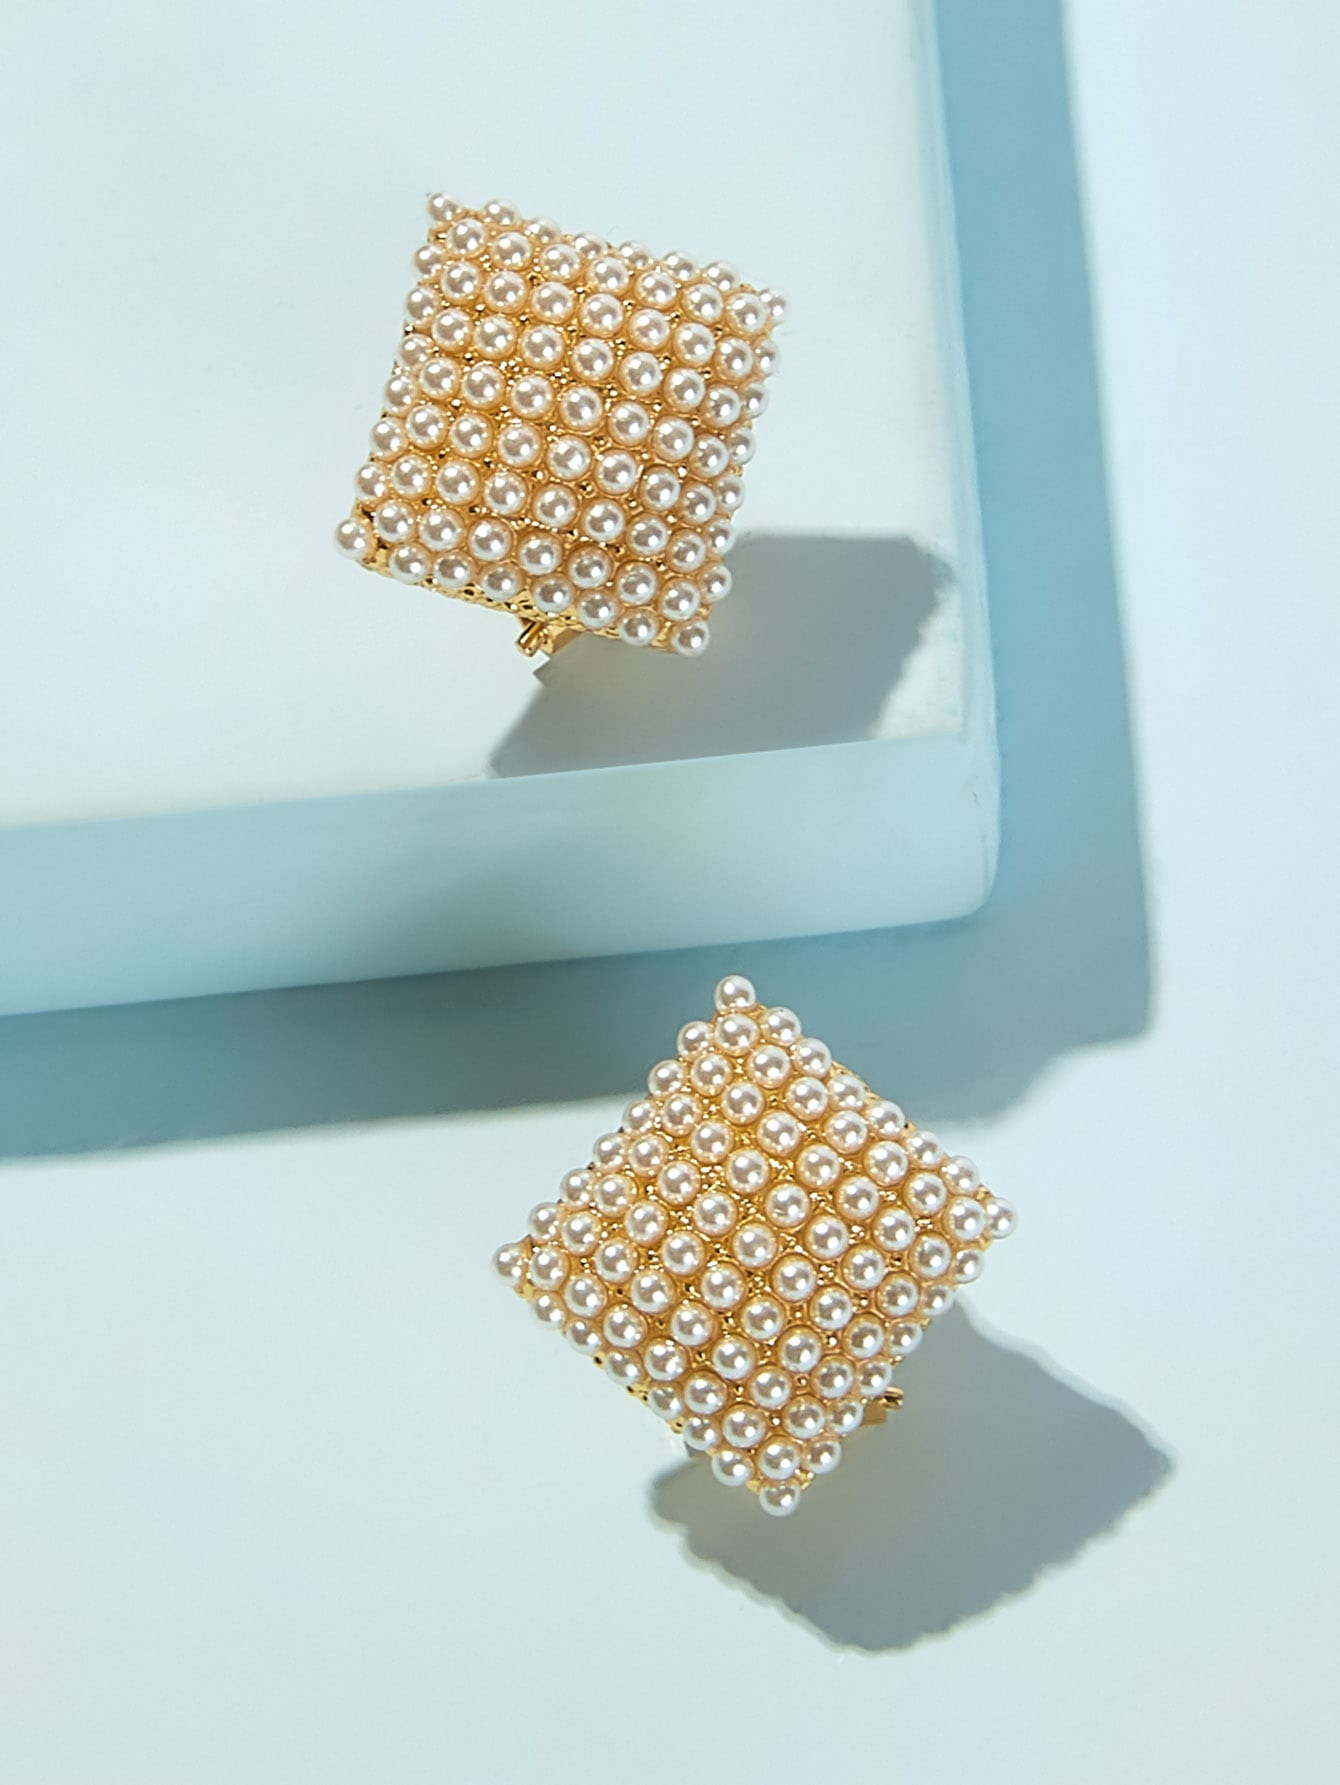 Golden Square Stud With Engraved Faux Pearl 1 Pair Earrings